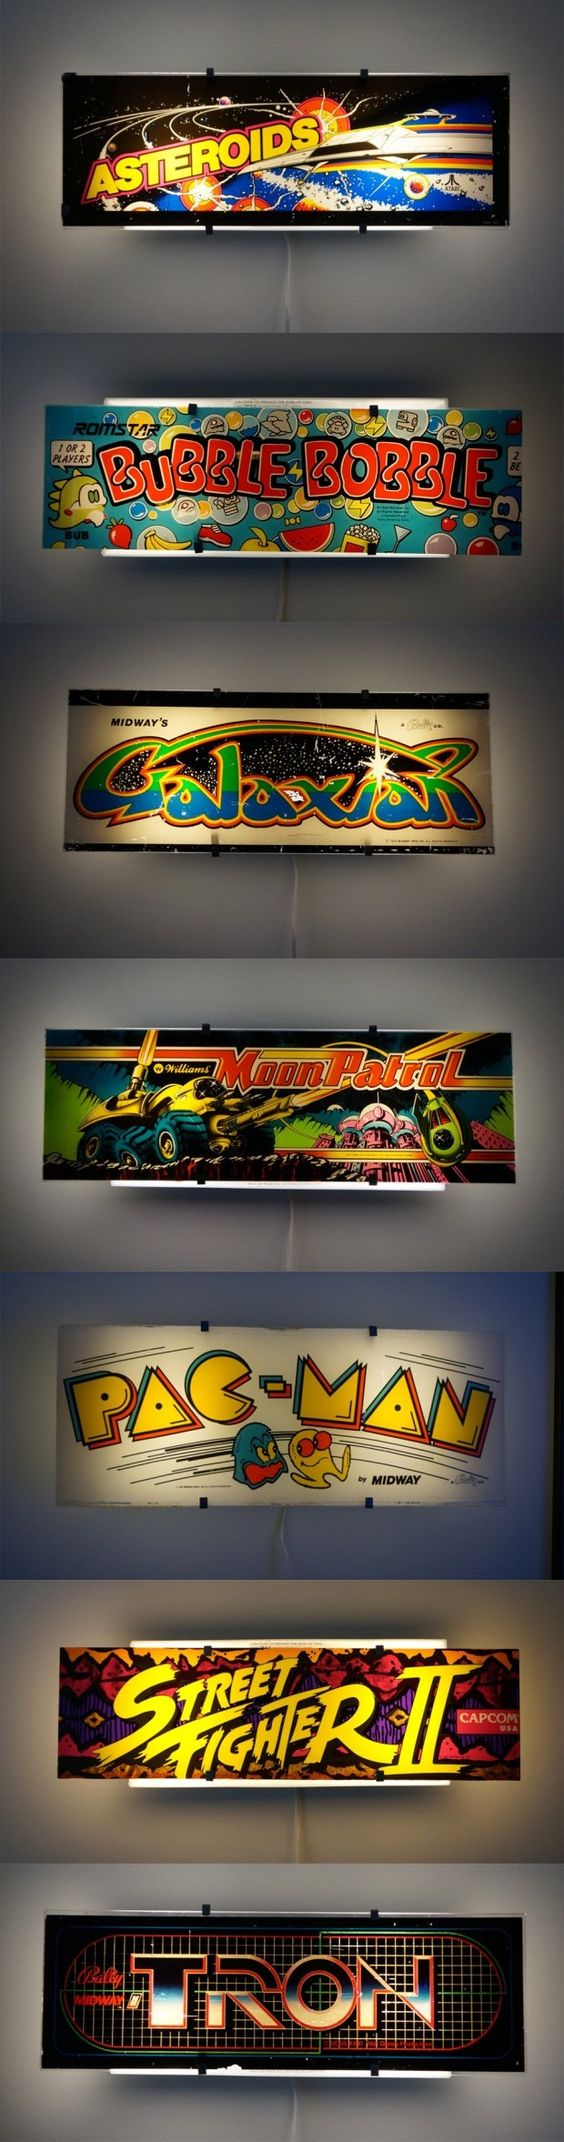 Arcade Lights Bring the Arcade Experience Home (Minus the Games)